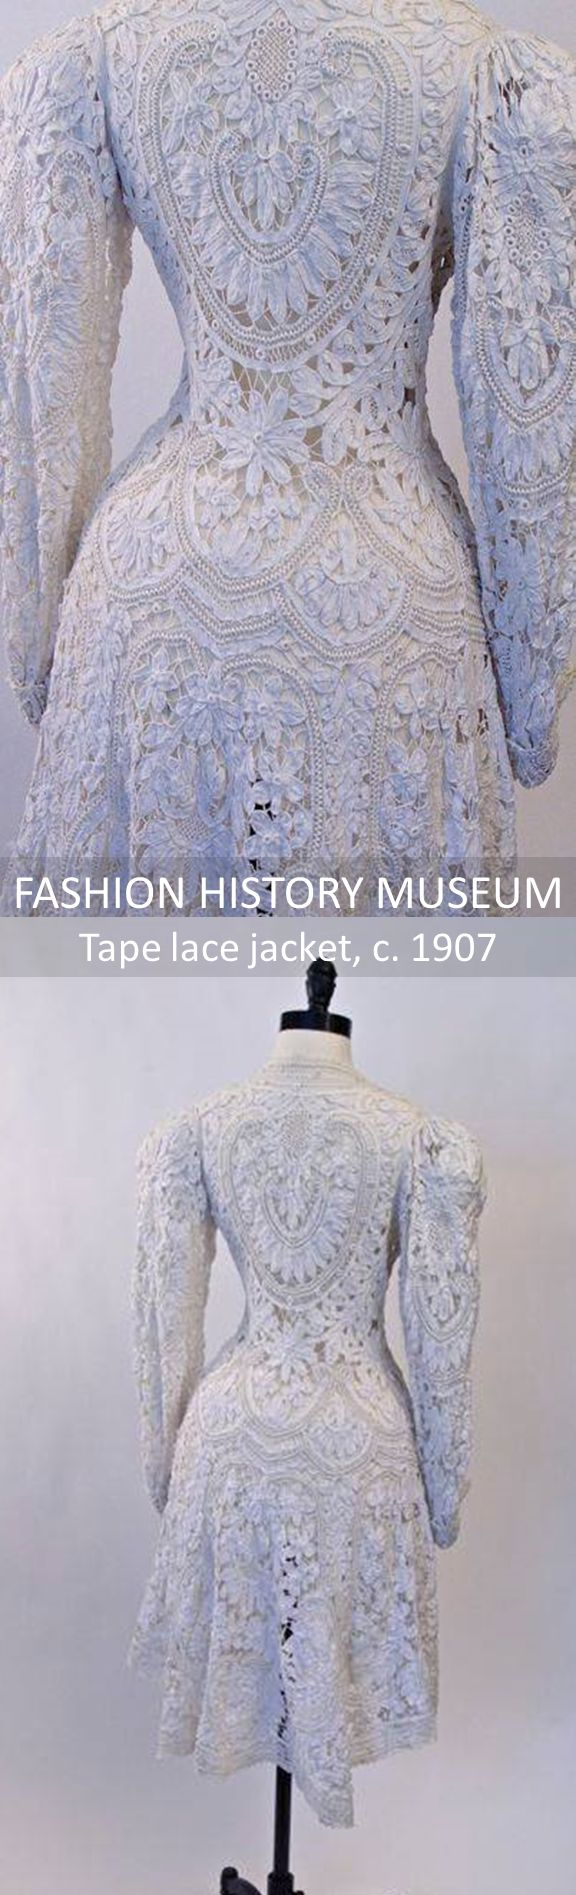 Fashion History Museum. Artifact of the Week: Tape lace jacket, c. 1907